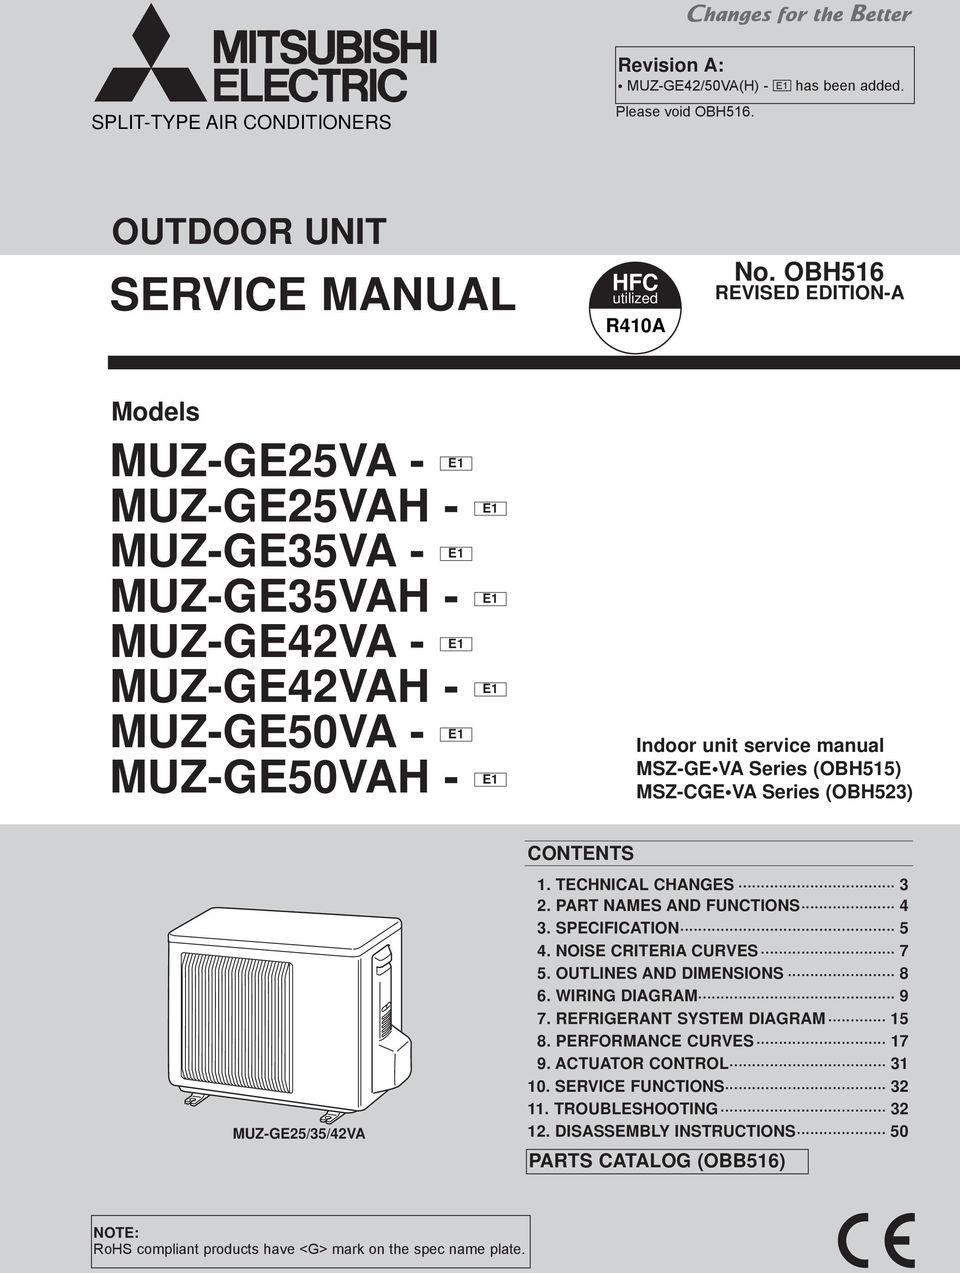 VA Series (OBH515) MSZ-CGE VA Series (OBH523) MUZ-GE25/35/42VA CONTENTS 1. TECHNICAL CHANGES 3 2. PART NAMES AND FUNCTIONS 4 3. SPECIFICATION 5 4. NOISE CRITERIA CURVES 7 5.